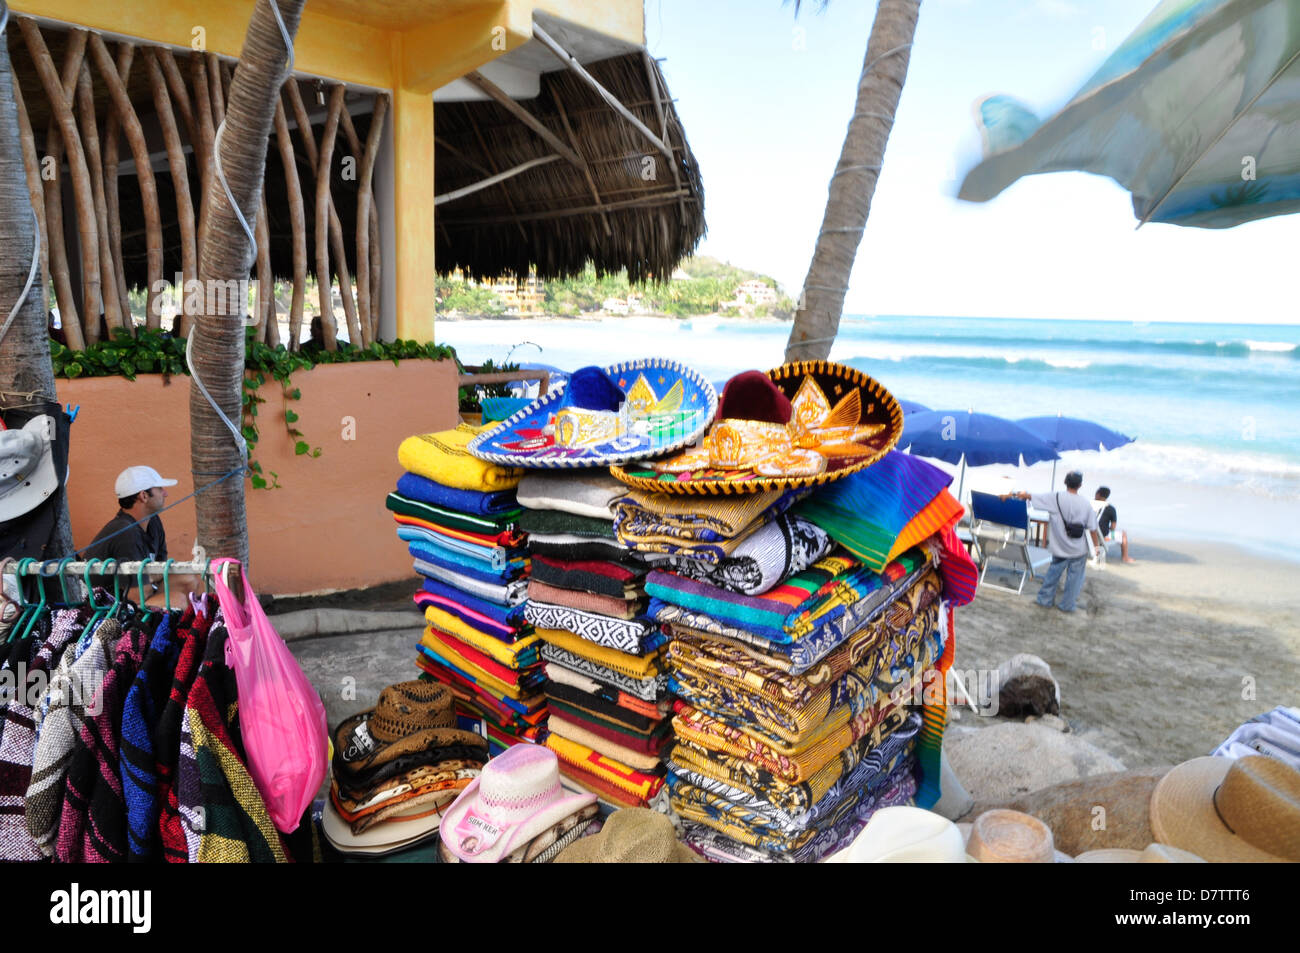 Colorful sombreros and serapes for sale at a beach in Sayulita, Mexico. Stock Photo